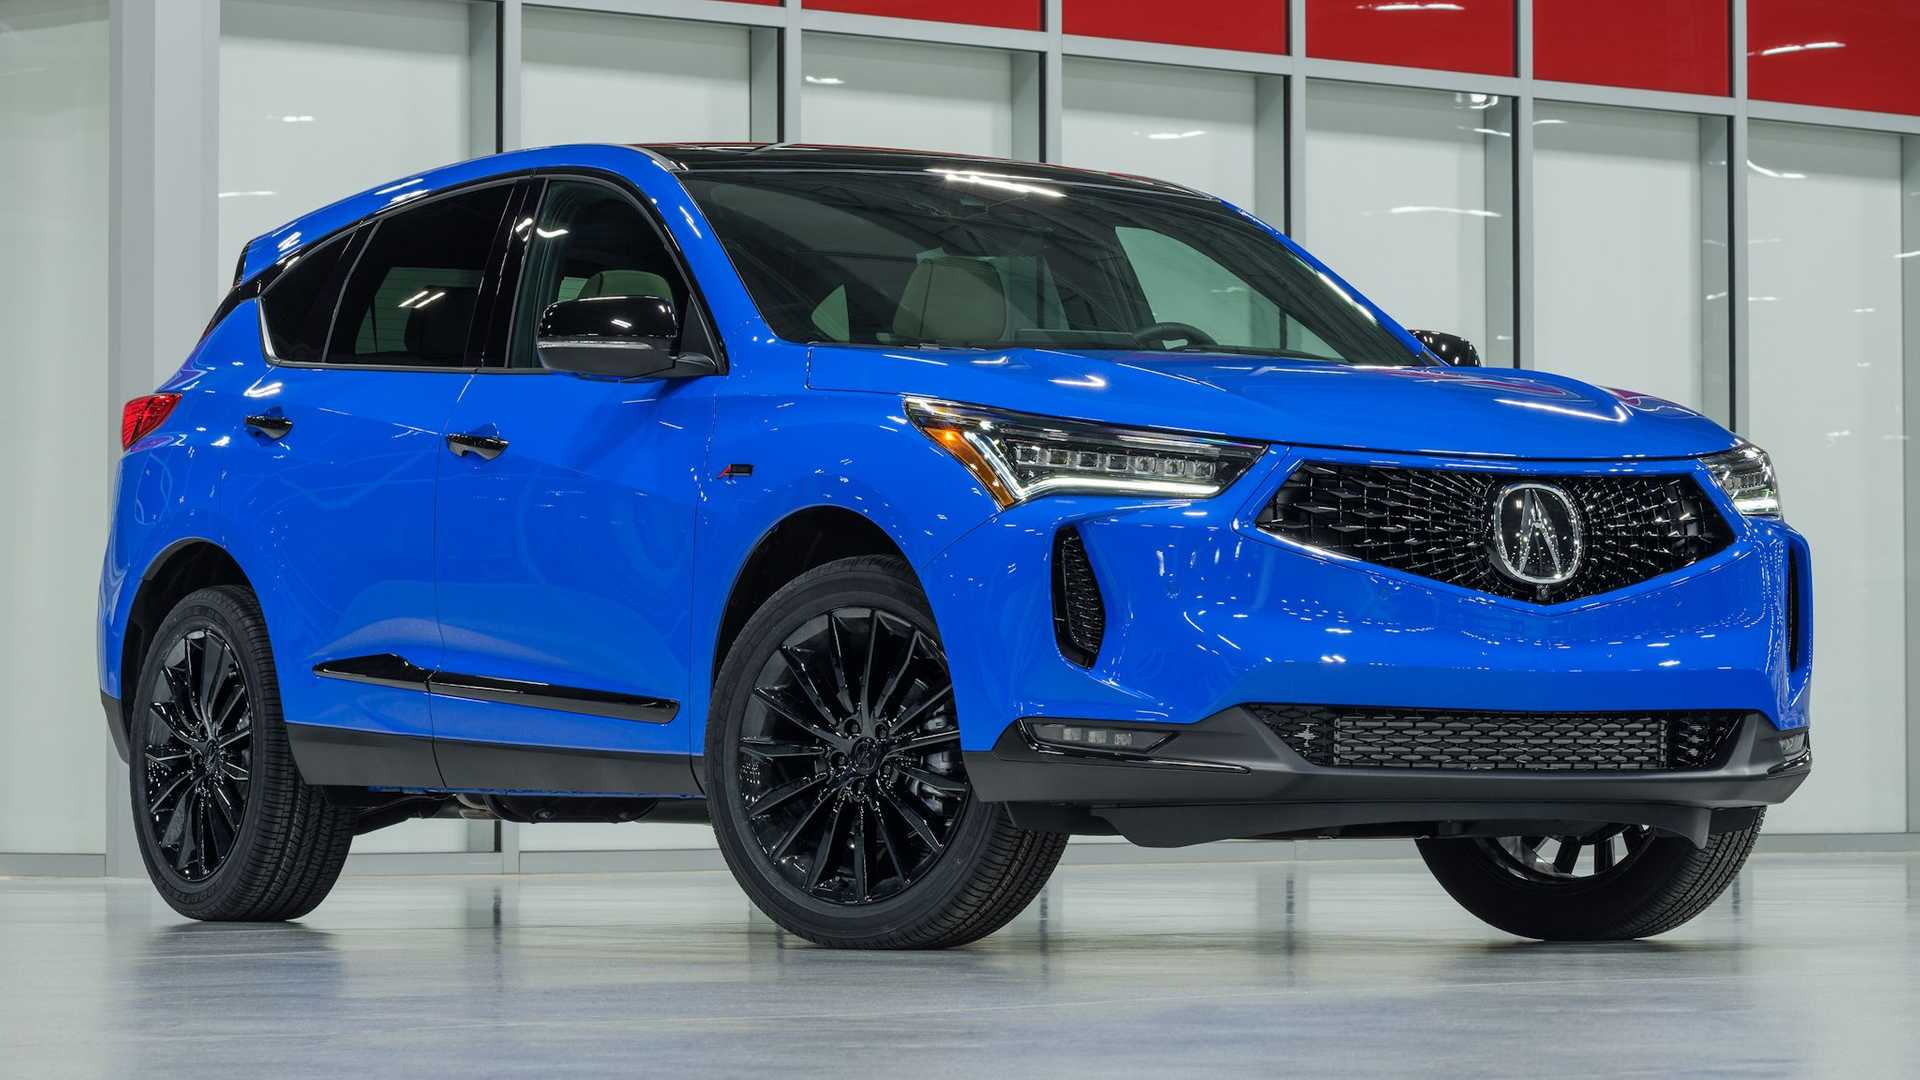 Three years after the launch of the third-gen RDX SUV, Acura has facelifted it along with introducing some technical improvements heading into 2022.